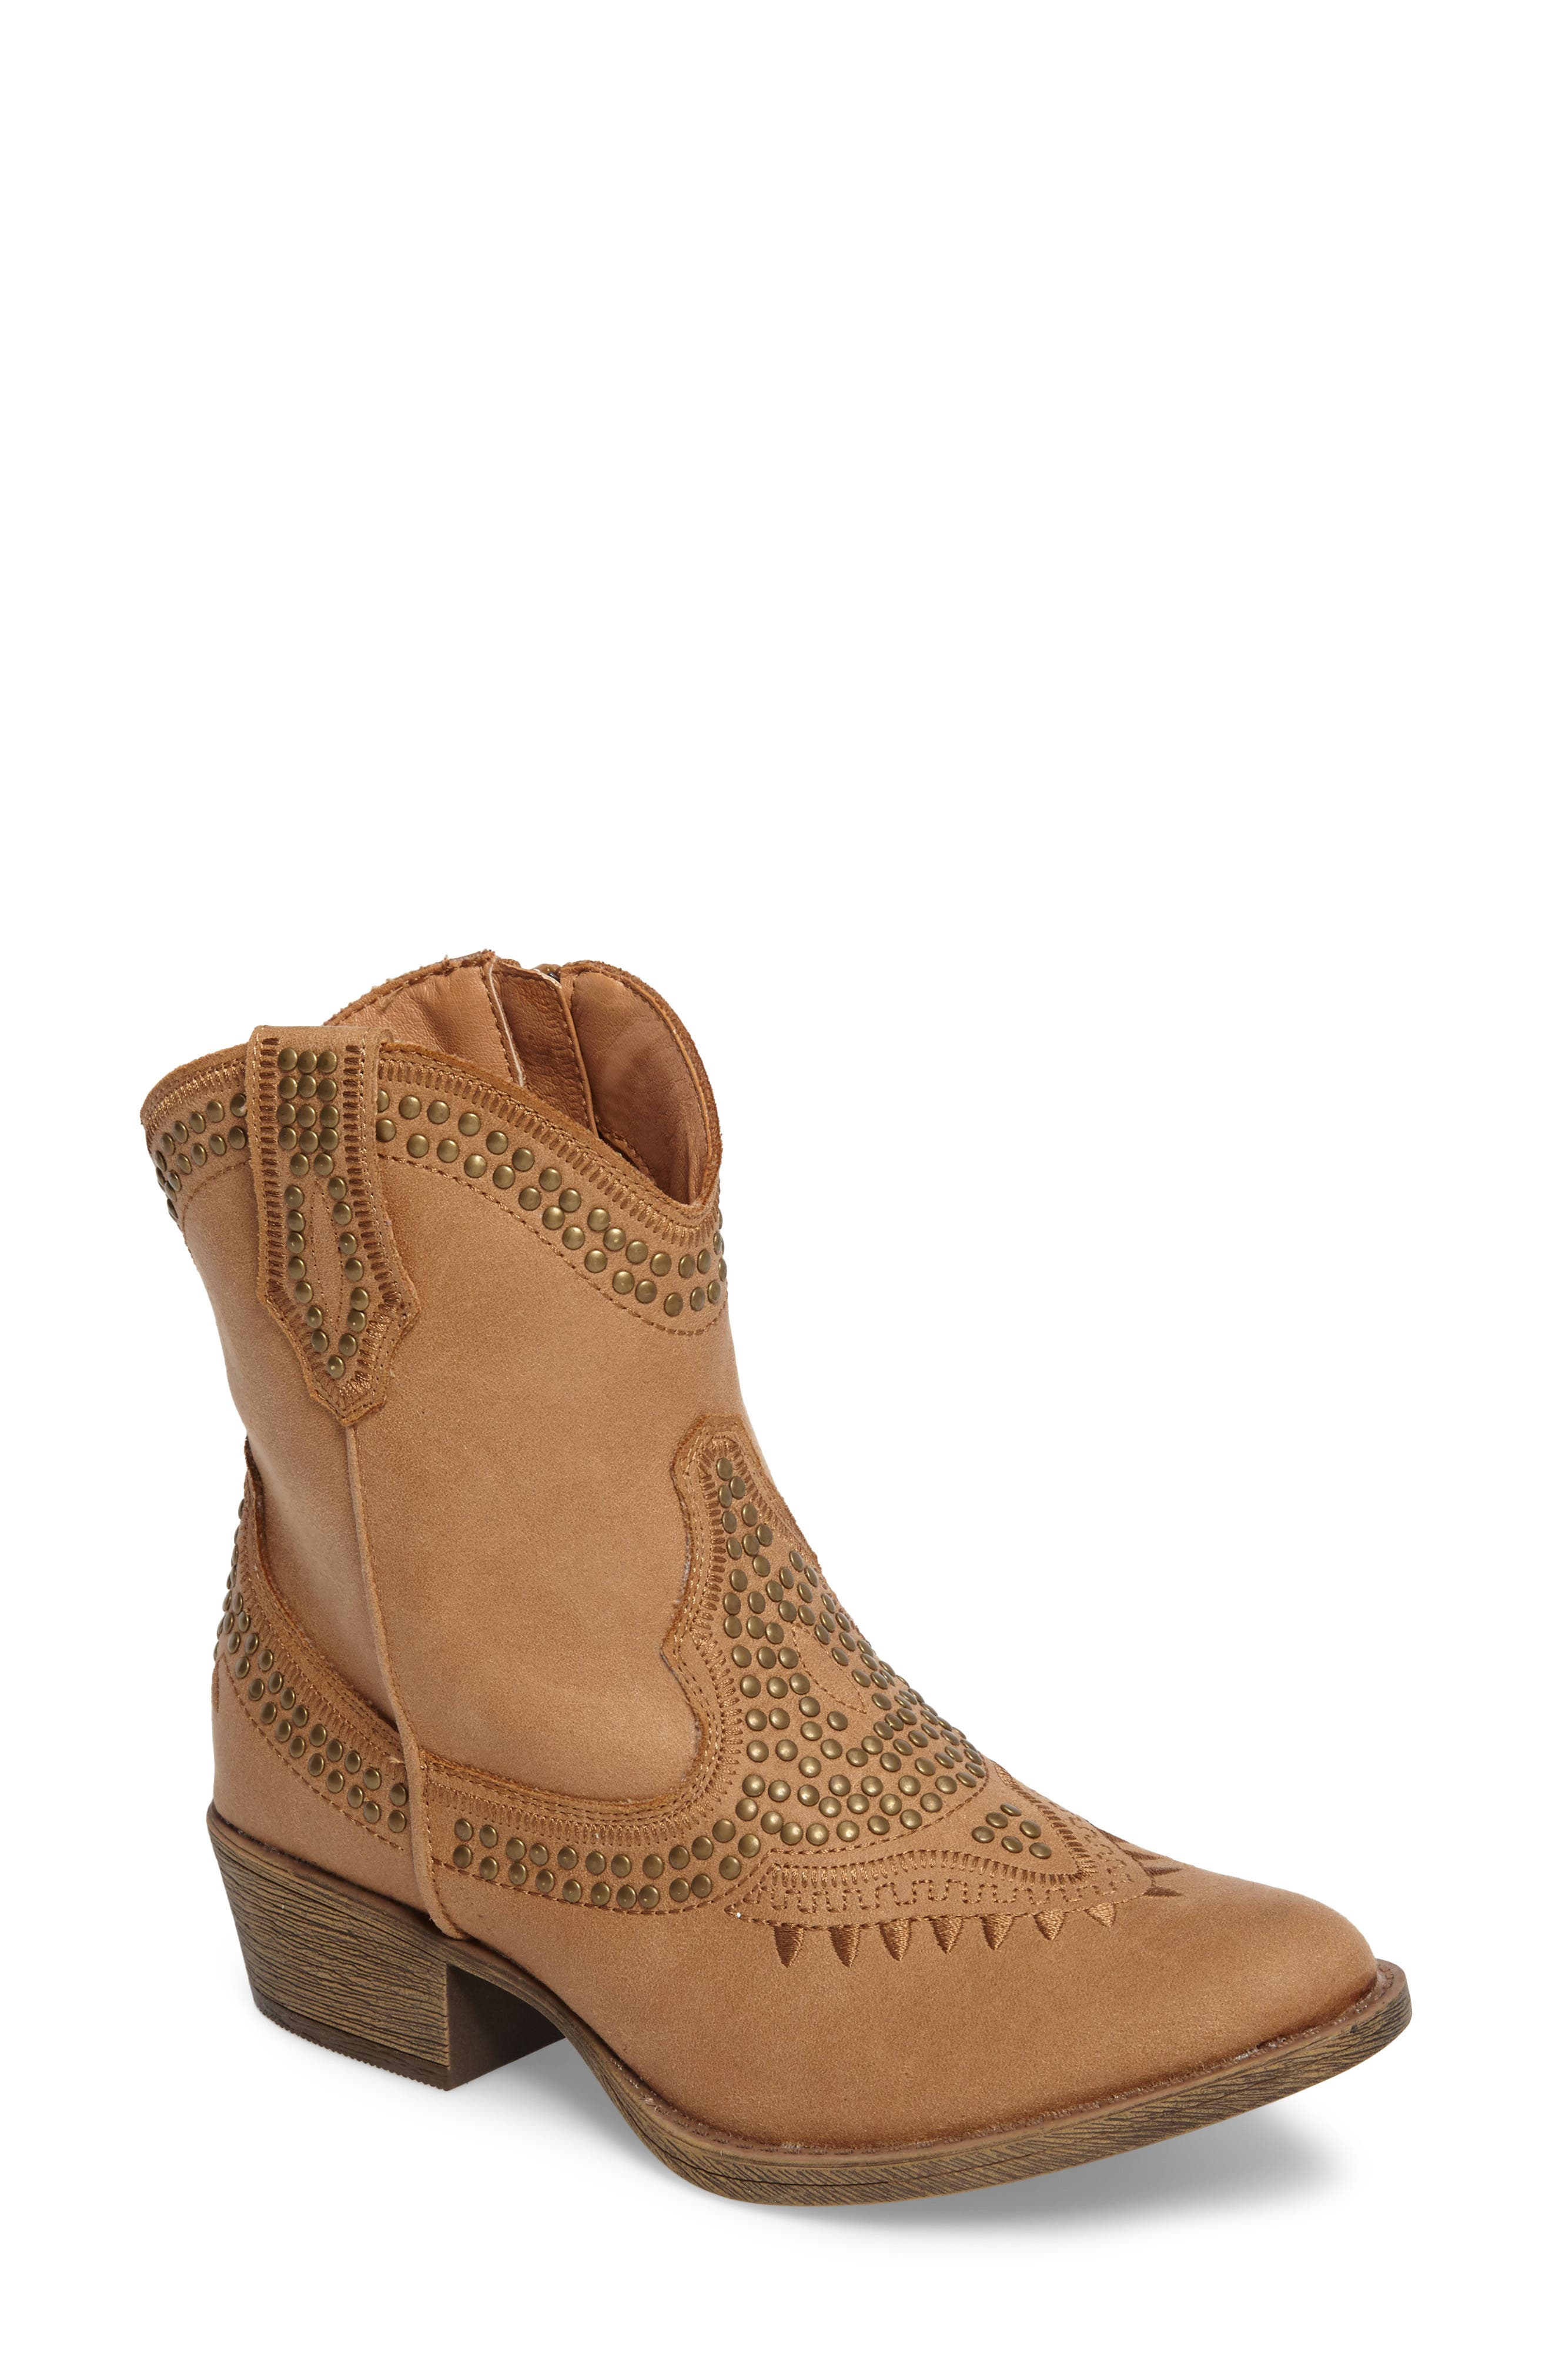 Amour Embellished Western Bootie,                             Main thumbnail 1, color,                             Natural